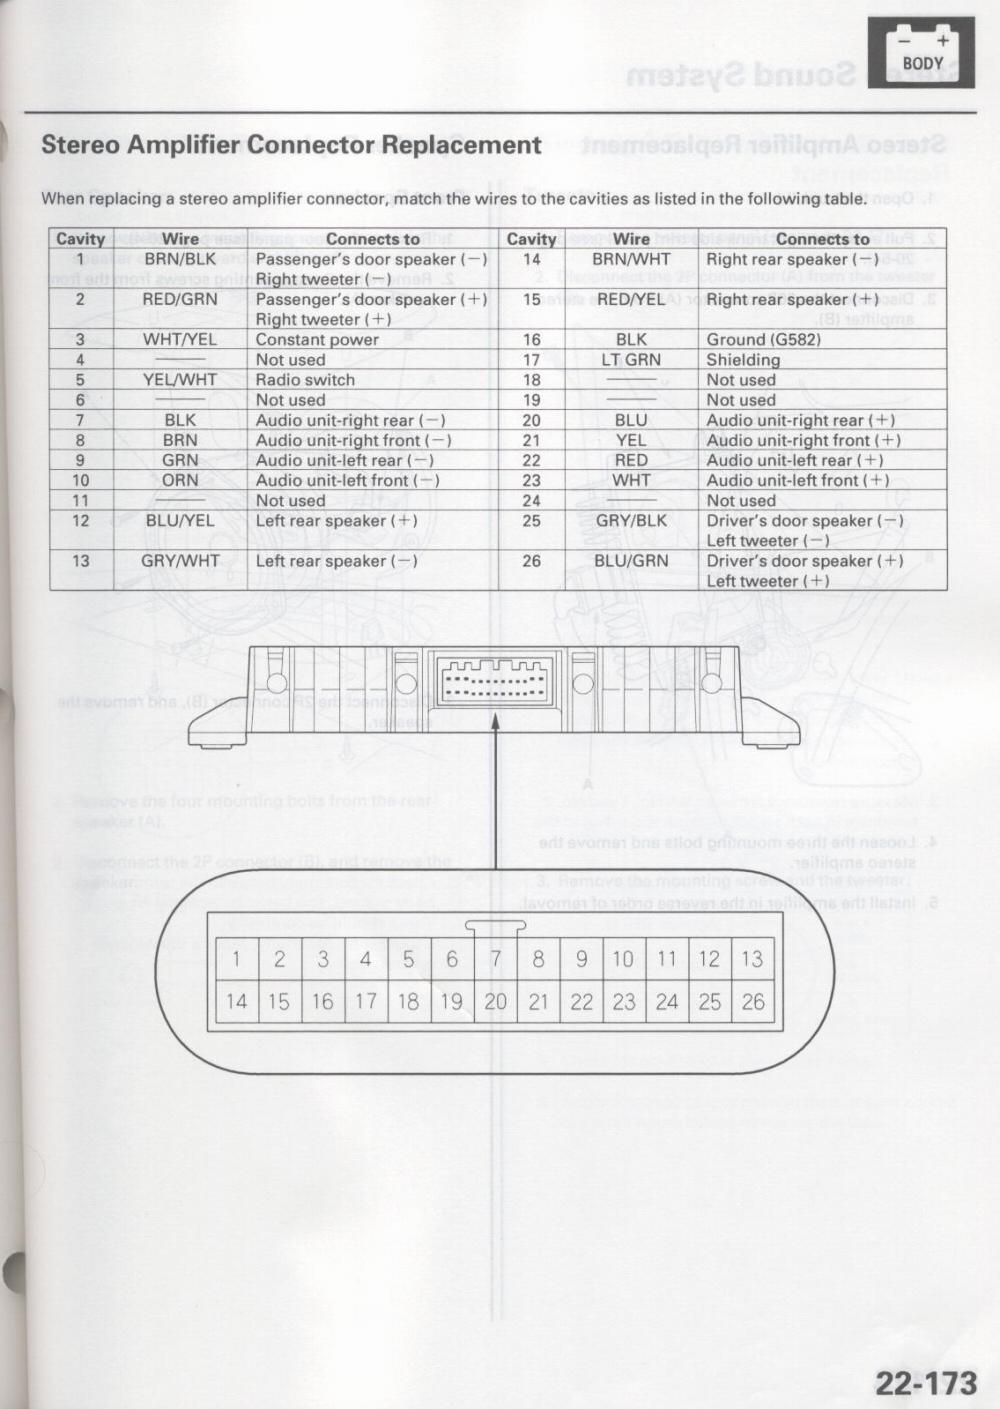 Acura 2002 TL car stereo amplifier wiring diagram harness car radio stereo audio wiring diagram autoradio connector wire 2012 chrysler 200 speaker wiring diagram at honlapkeszites.co